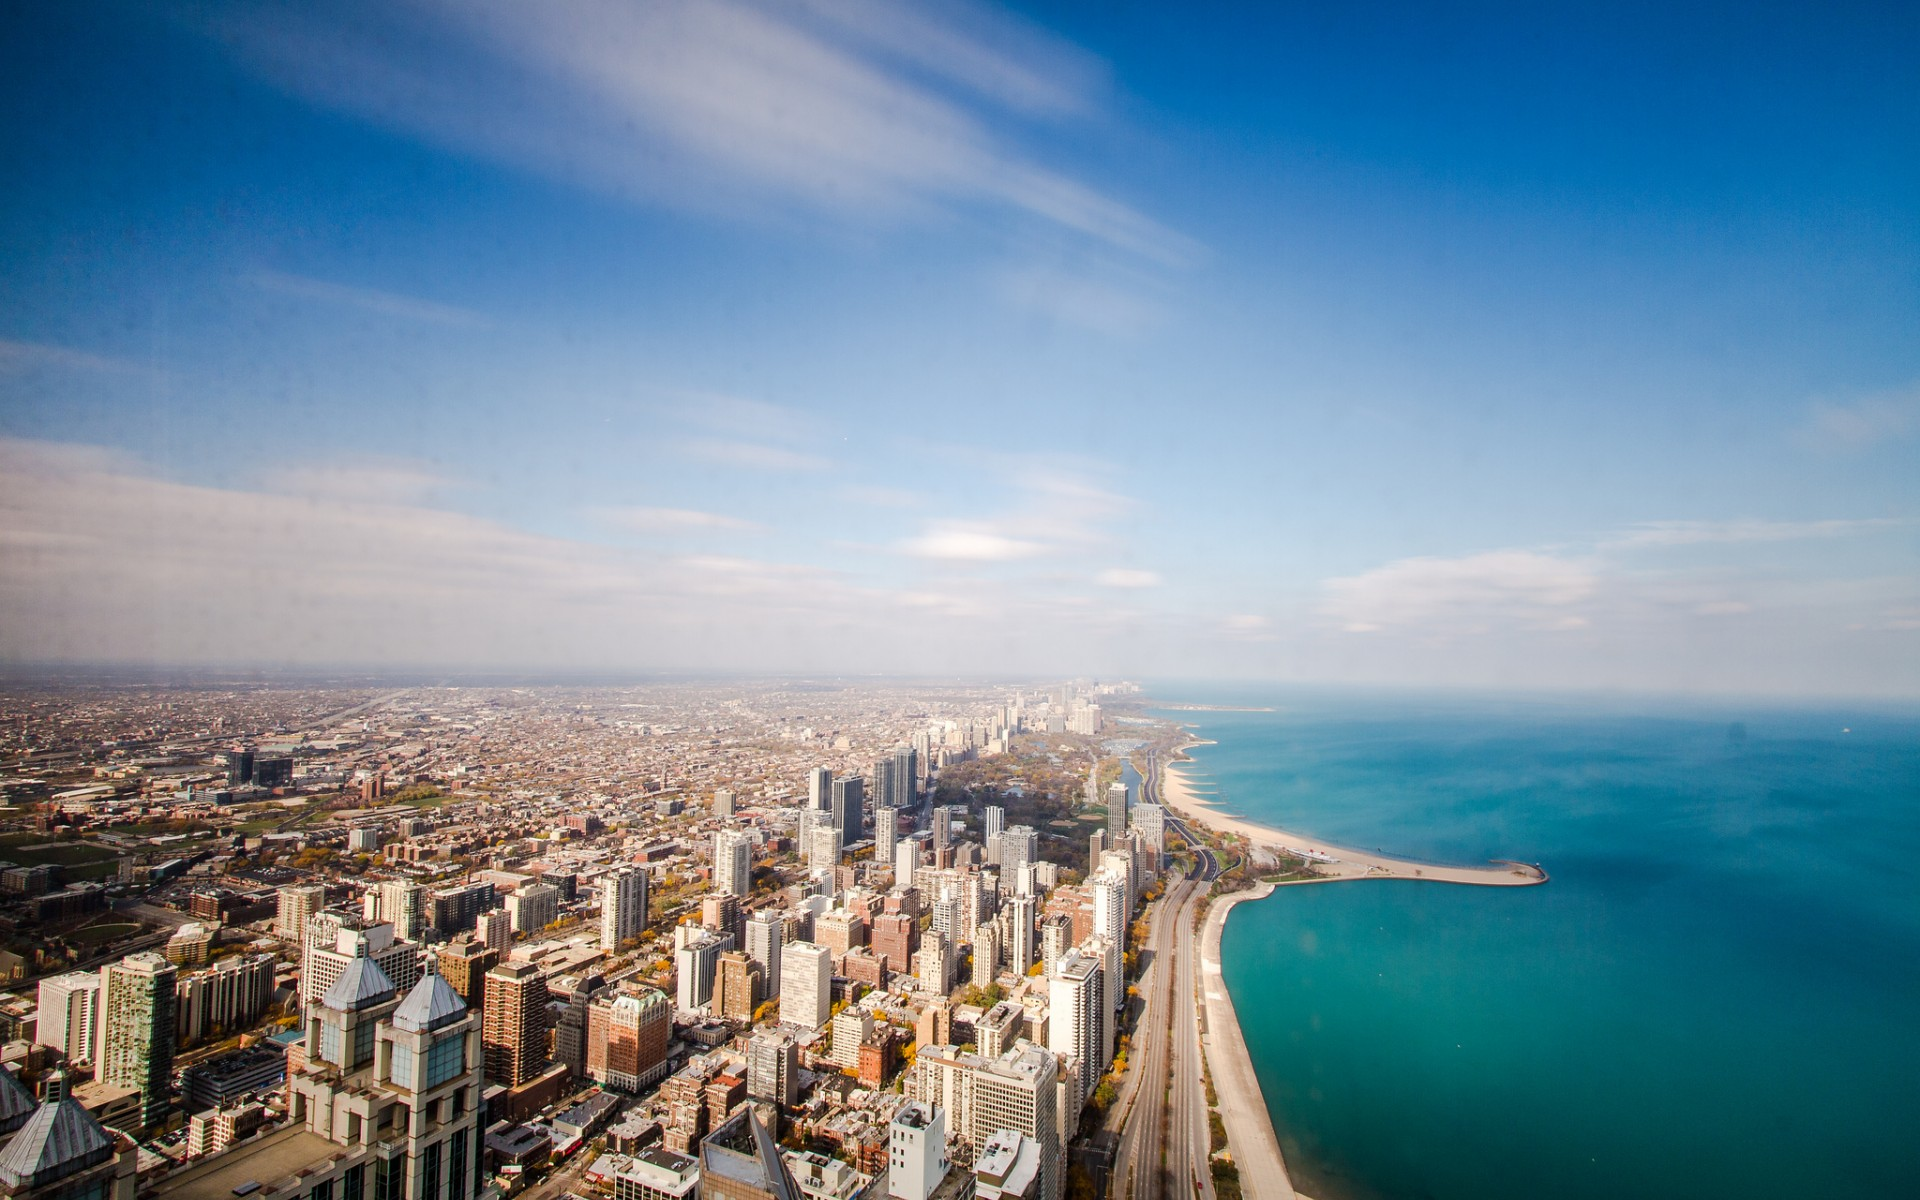 USA Illinois Chicago Beach Ocean Coastline Horizon Sky Clouds Day Clear Skyscrapers Roads Wallpaper